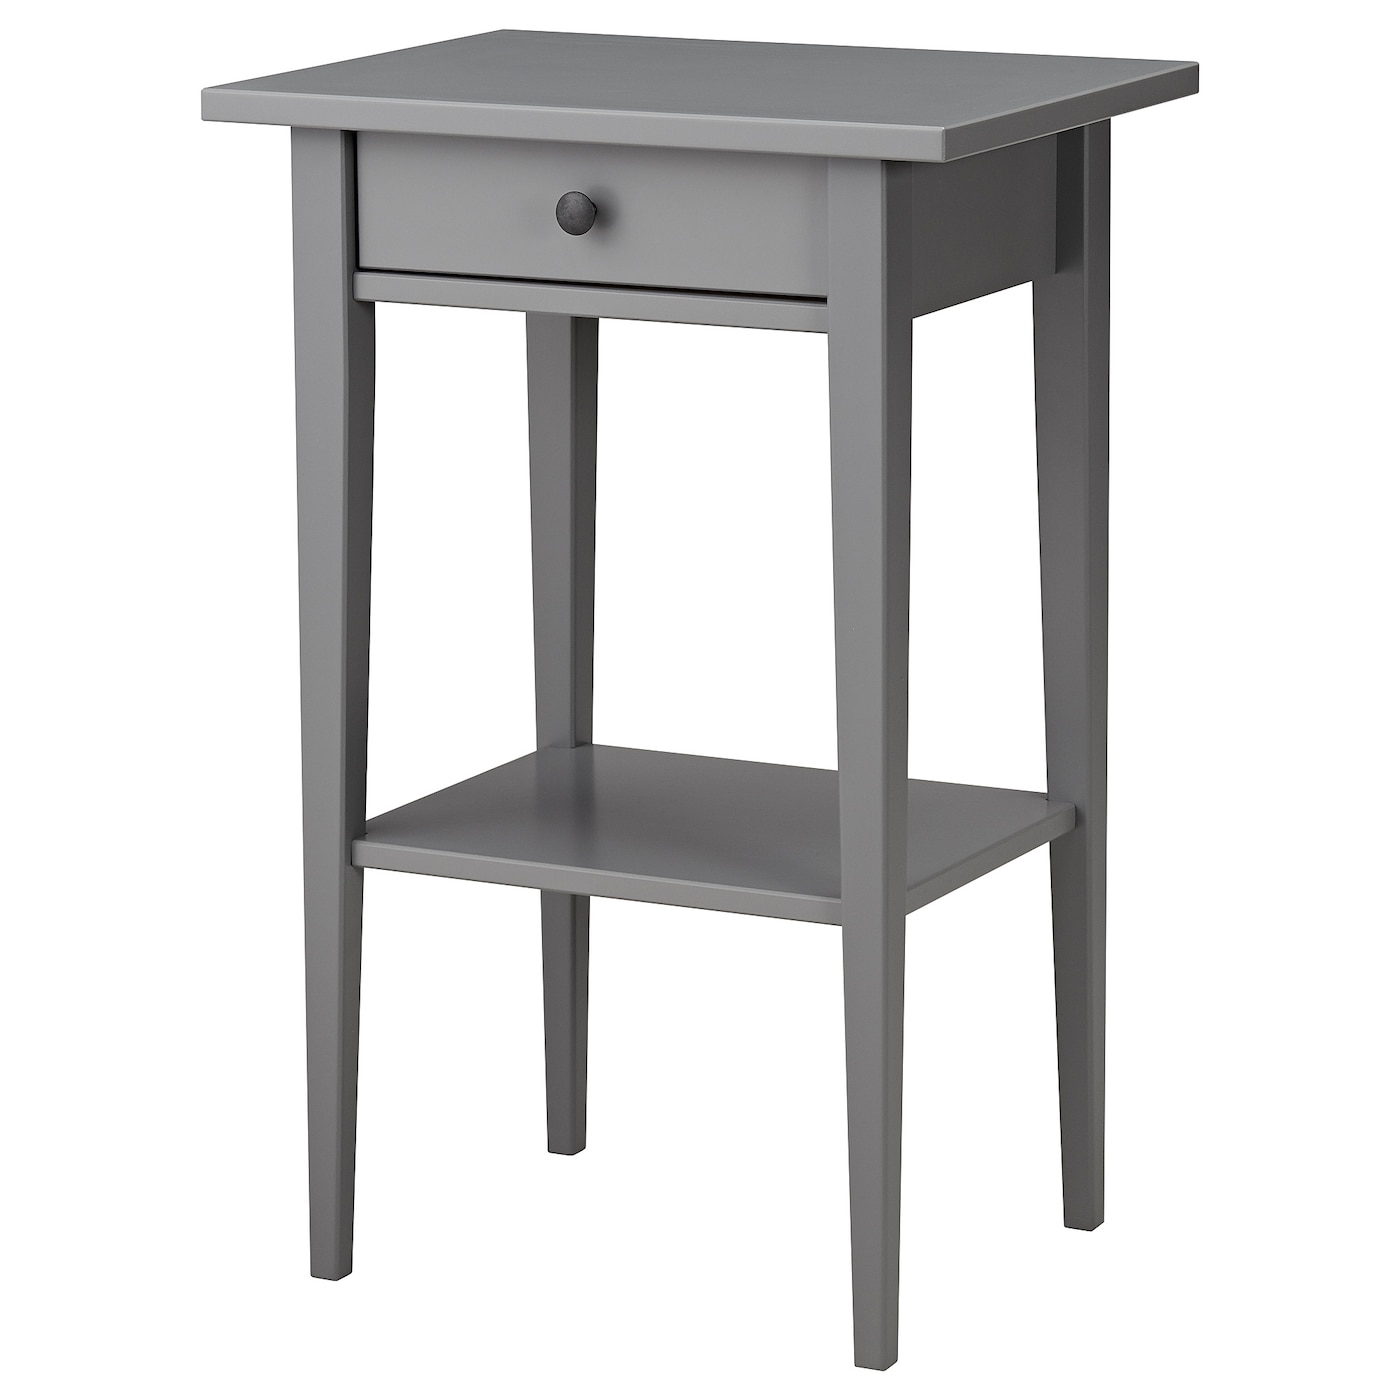 Merveilleux IKEA HEMNES Bedside Table Made Of Solid Wood, Which Is A Hardwearing And  Warm Natural